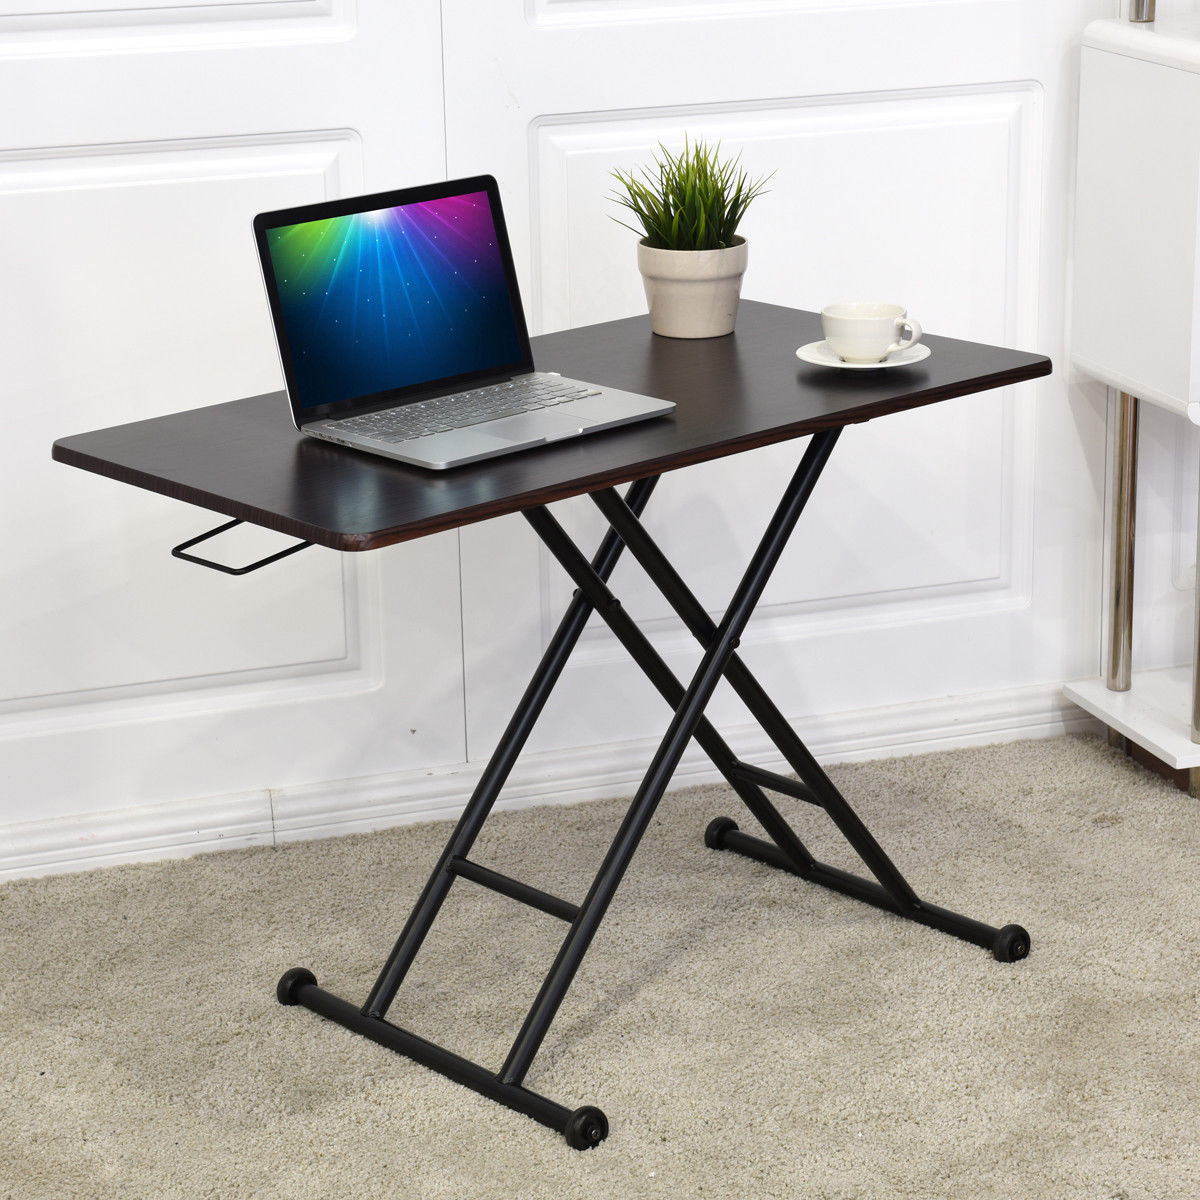 Giantex Height Adjustable Standing Desk Converter Sit-Stand Computer Laptop Workstation Modern Wood Furniture HW57064